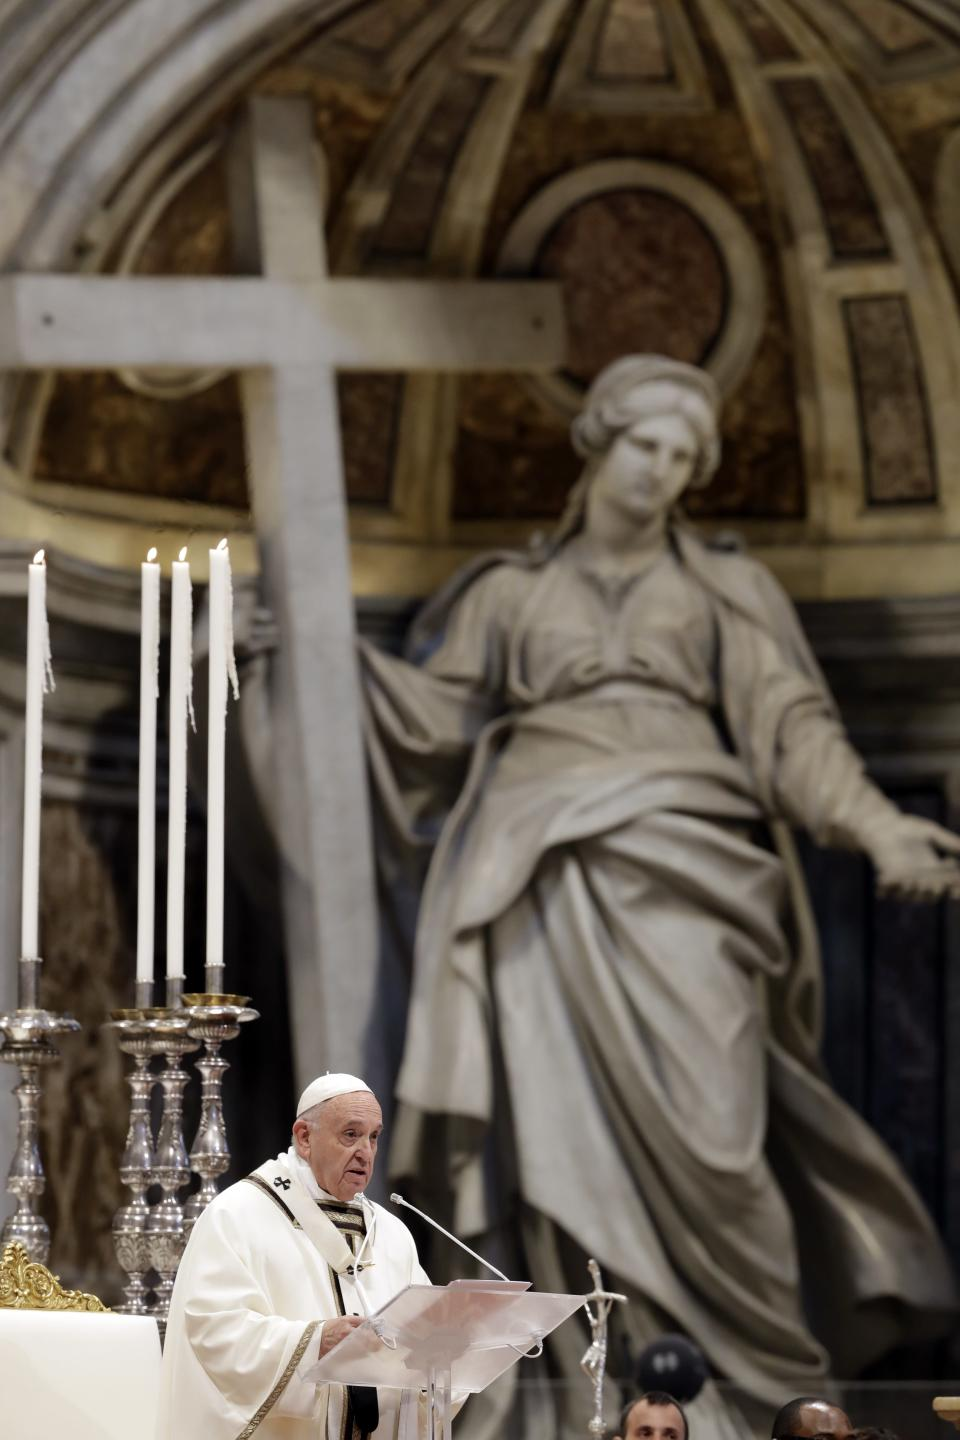 Pope Francis celebrates Chrism Mass inside St. Peter's Basilica, at the Vatican, Thursday, April 18, 2019. During the Mass the Pontiff blesses a token amount of oil that will be used to administer the sacraments for the year. (AP Photo/Alessandra Tarantino)